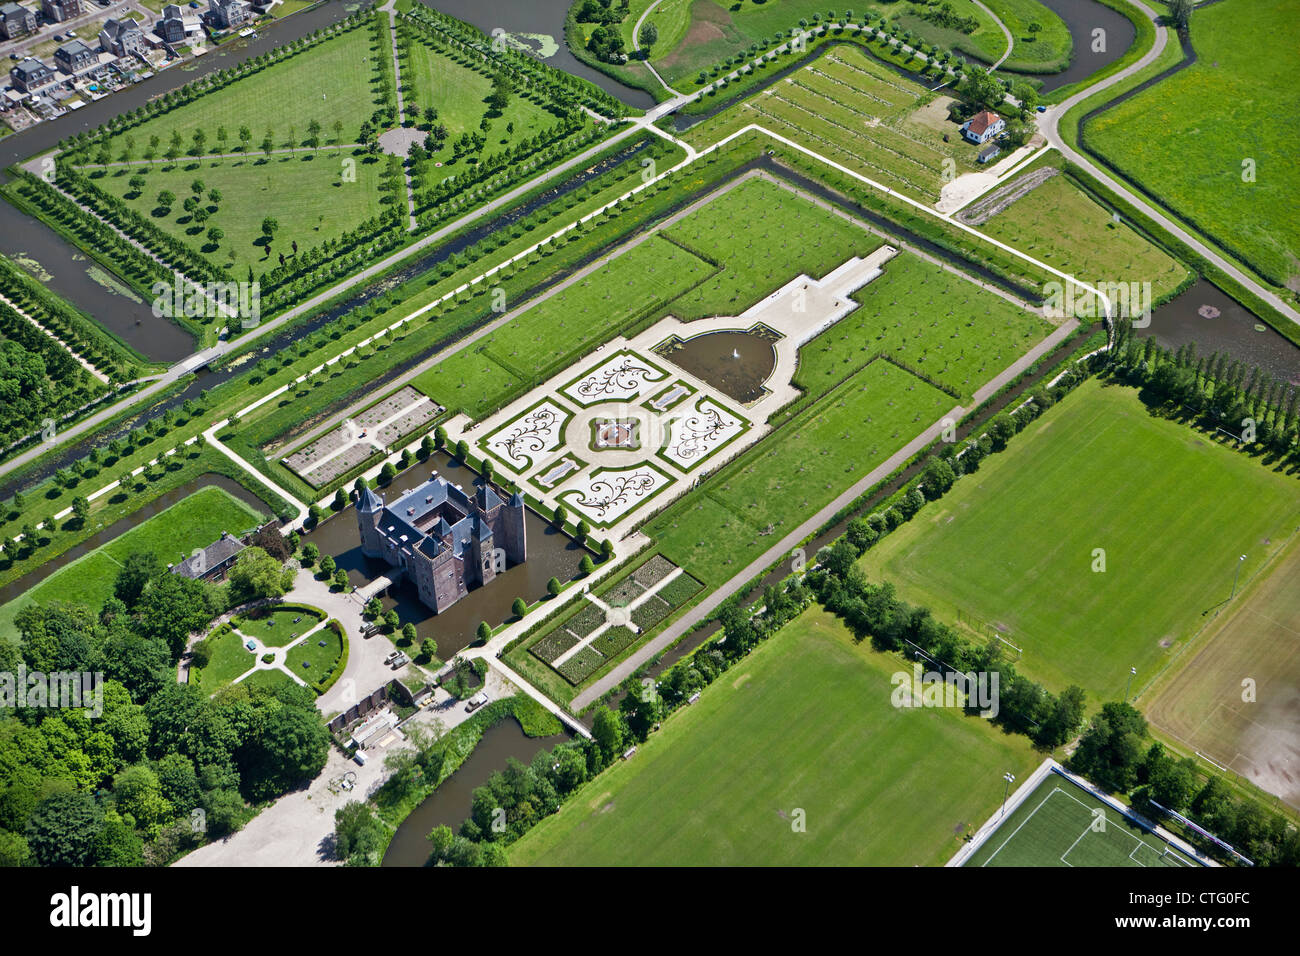 The Netherlands, Heemskerk, Aerial Stayokay Hostel, Castle called Slot Assumburg (Final Assumburg) - Stock Image